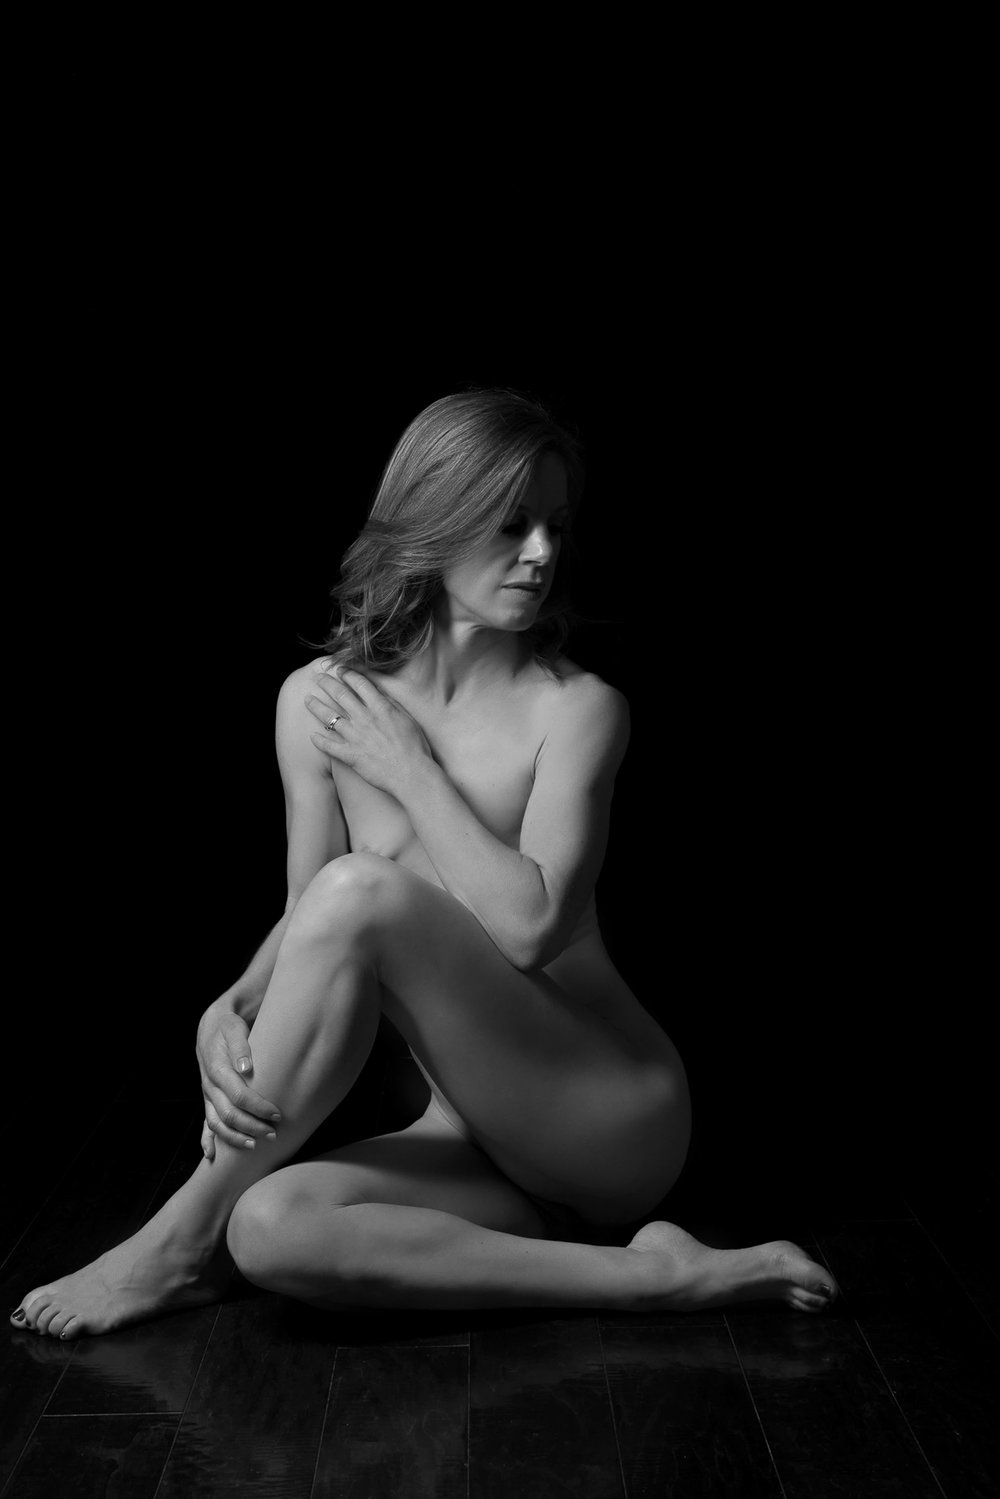 Denver nude art photographer